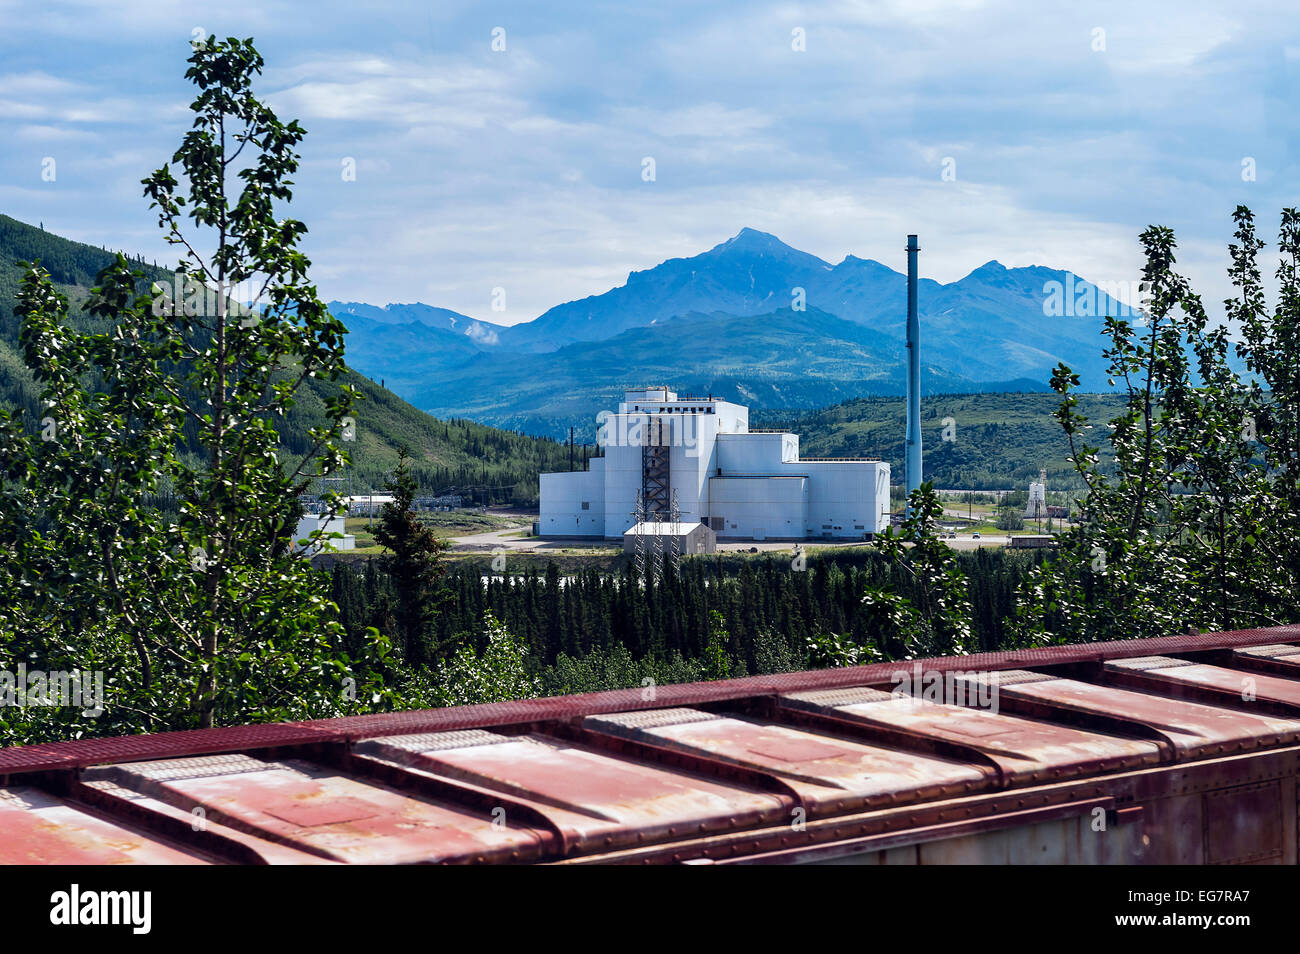 Coal power plant in Healy, Alaska, featuring state-of-the-art coal combustors and pollution controls, has passed - Stock Image